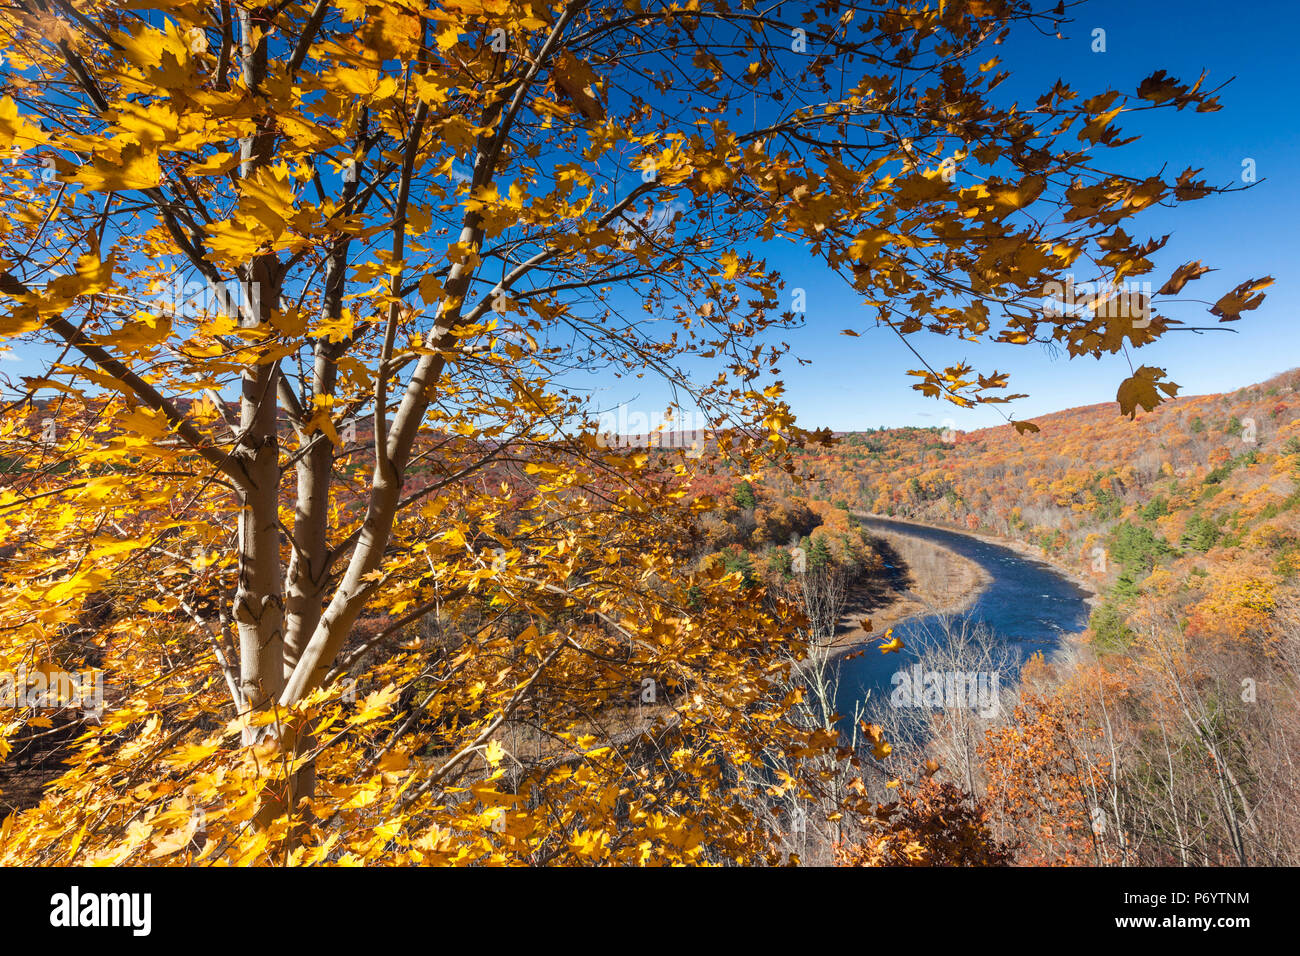 USA, Pennsylvania, Pocono Mountains, Port Jervis, elevated view of the Delaware River, autumn - Stock Image